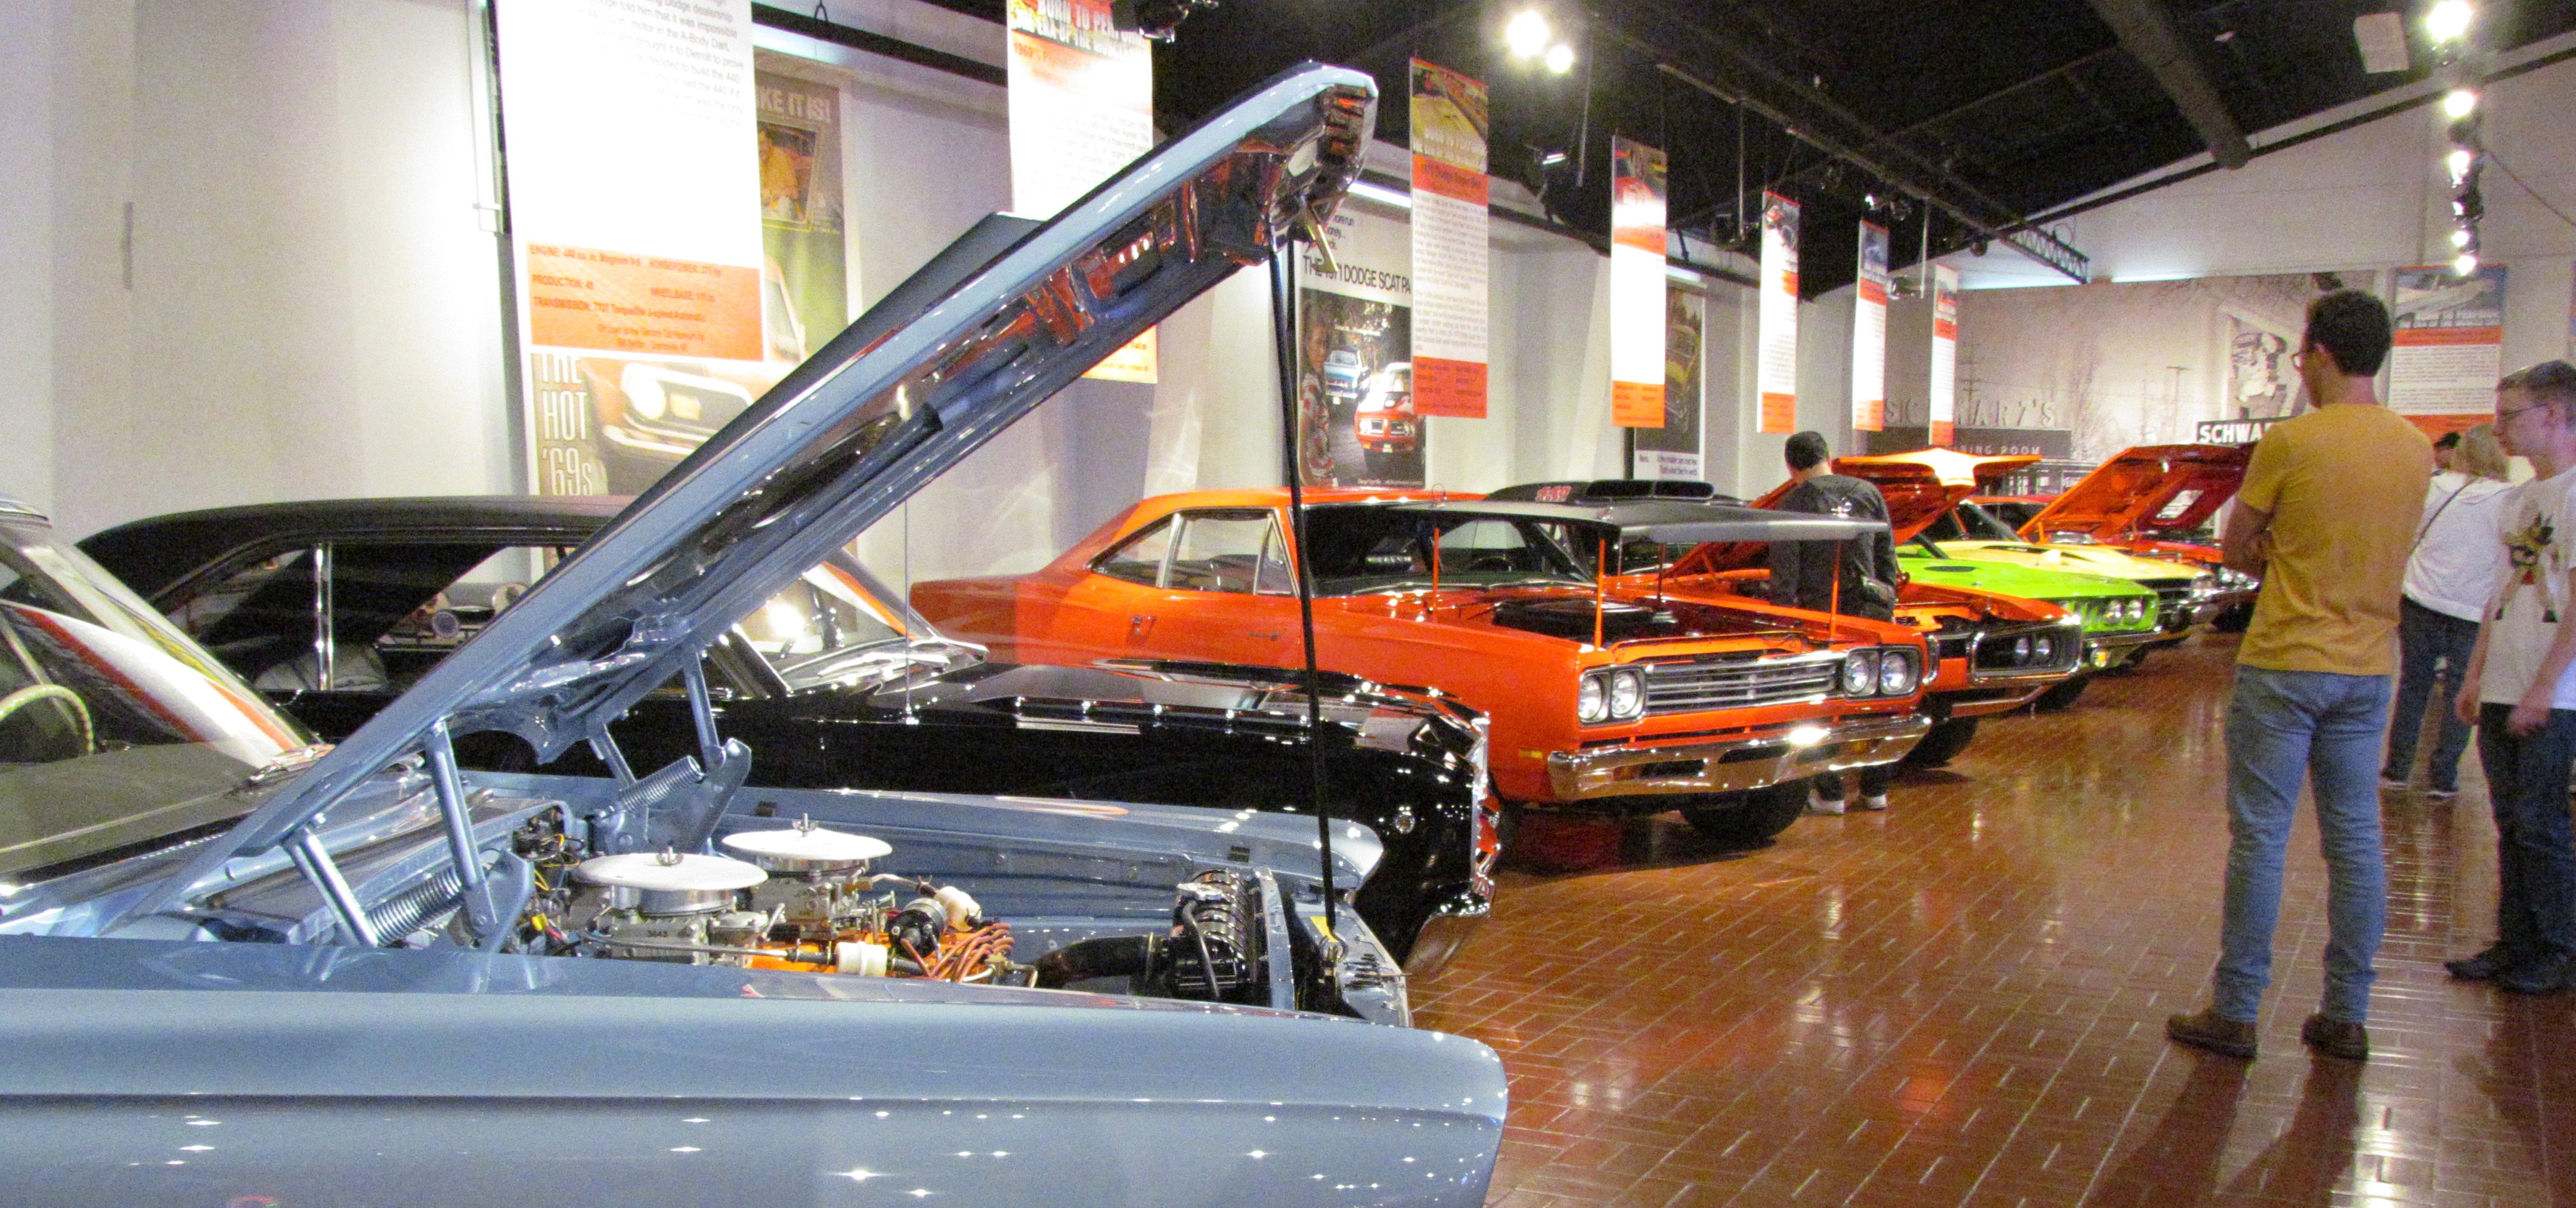 Gilmore muscle cars, Gilmore plans to add muscle car museum to its campus, ClassicCars.com Journal